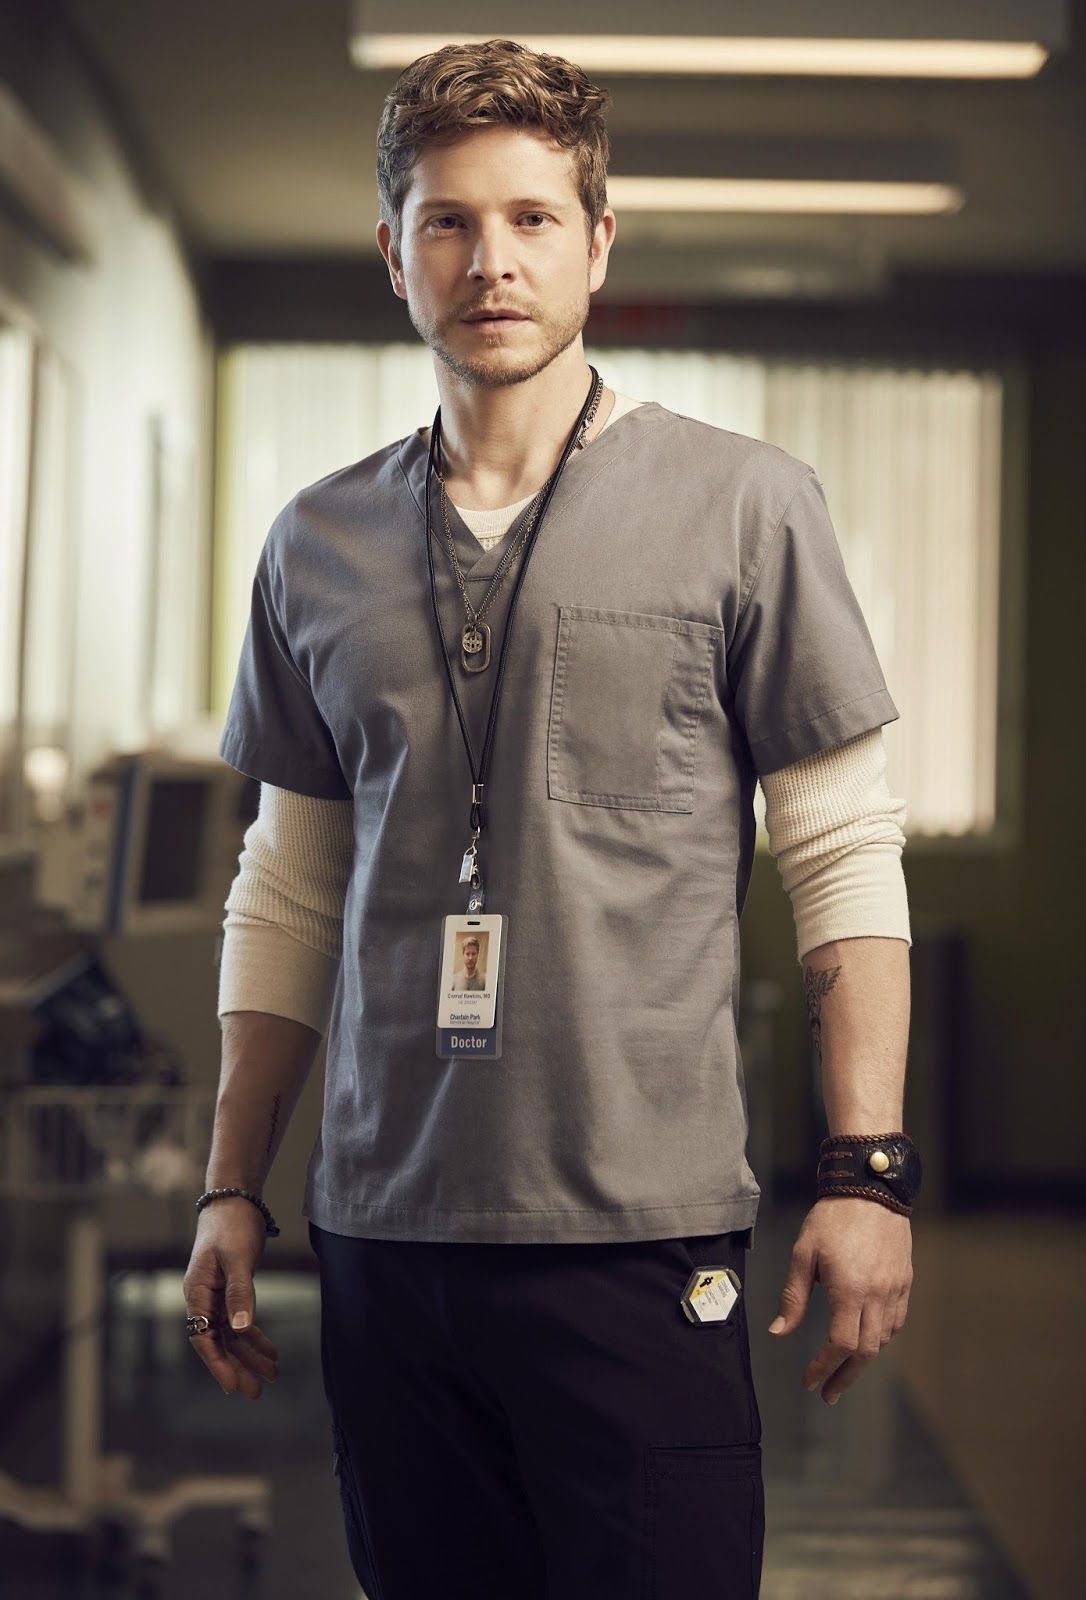 the resident - photo #30